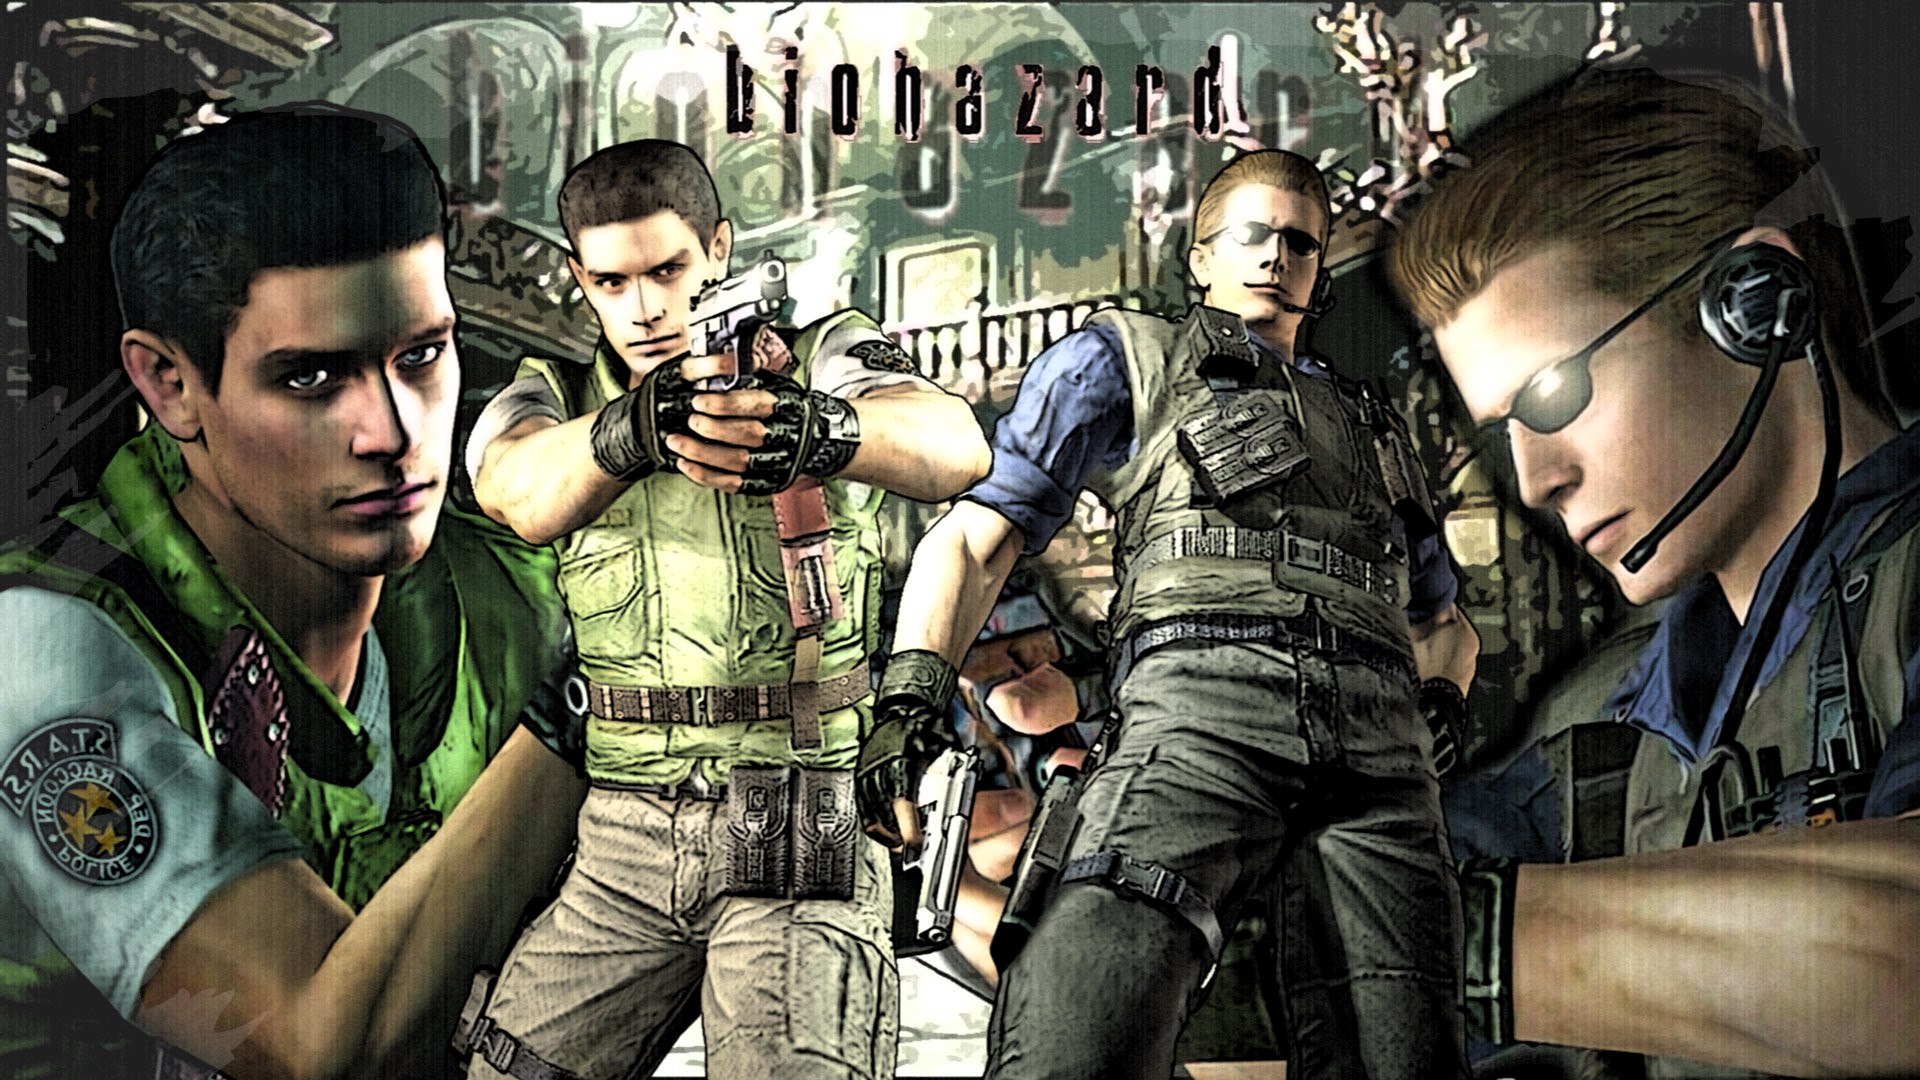 Res: 1920x1080, S.T.A.R.S. Wesker and Chris by MusashiChan69 ...